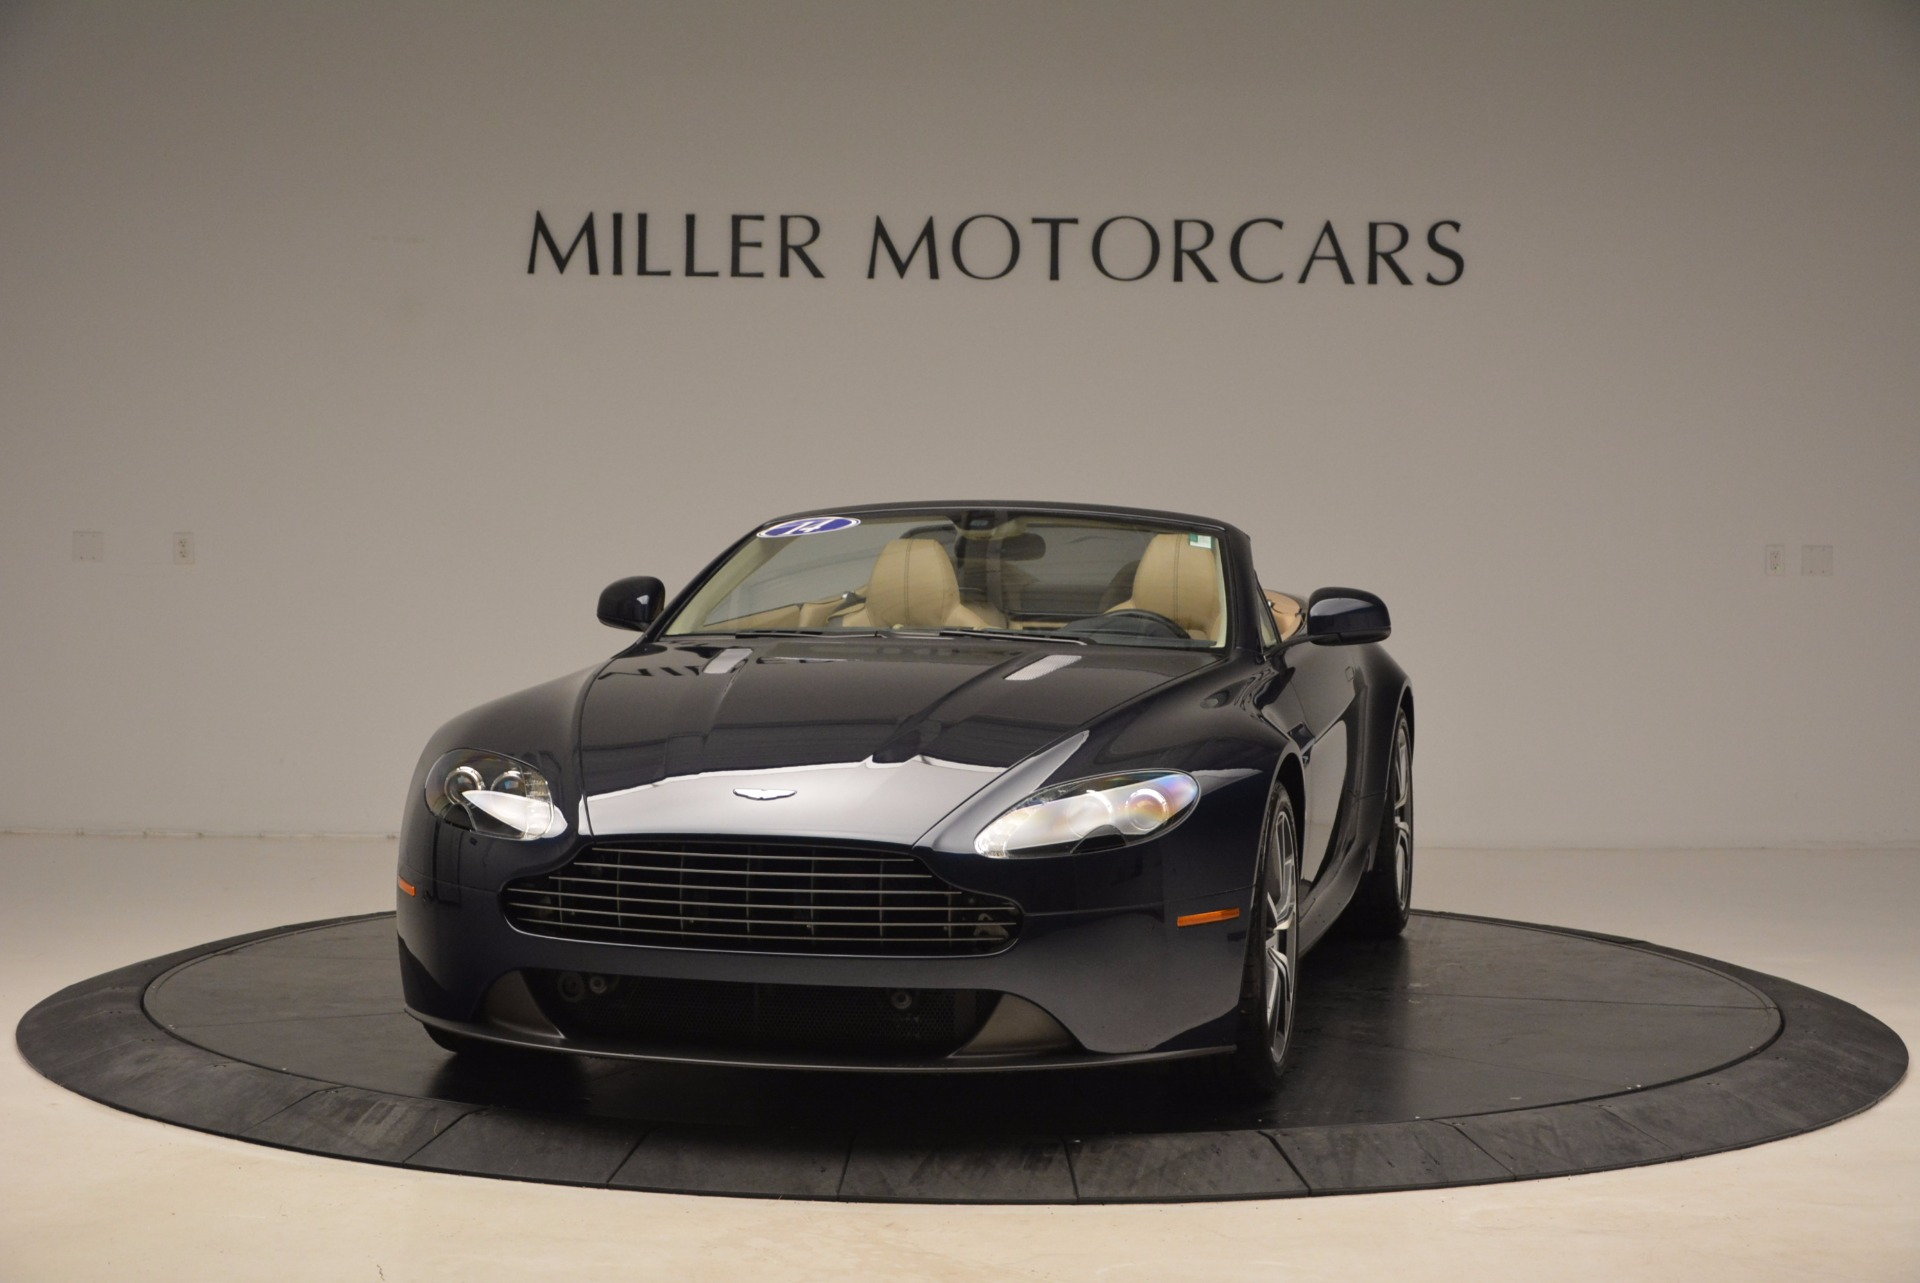 Used 2014 Aston Martin V8 Vantage Roadster for sale Sold at Bentley Greenwich in Greenwich CT 06830 1